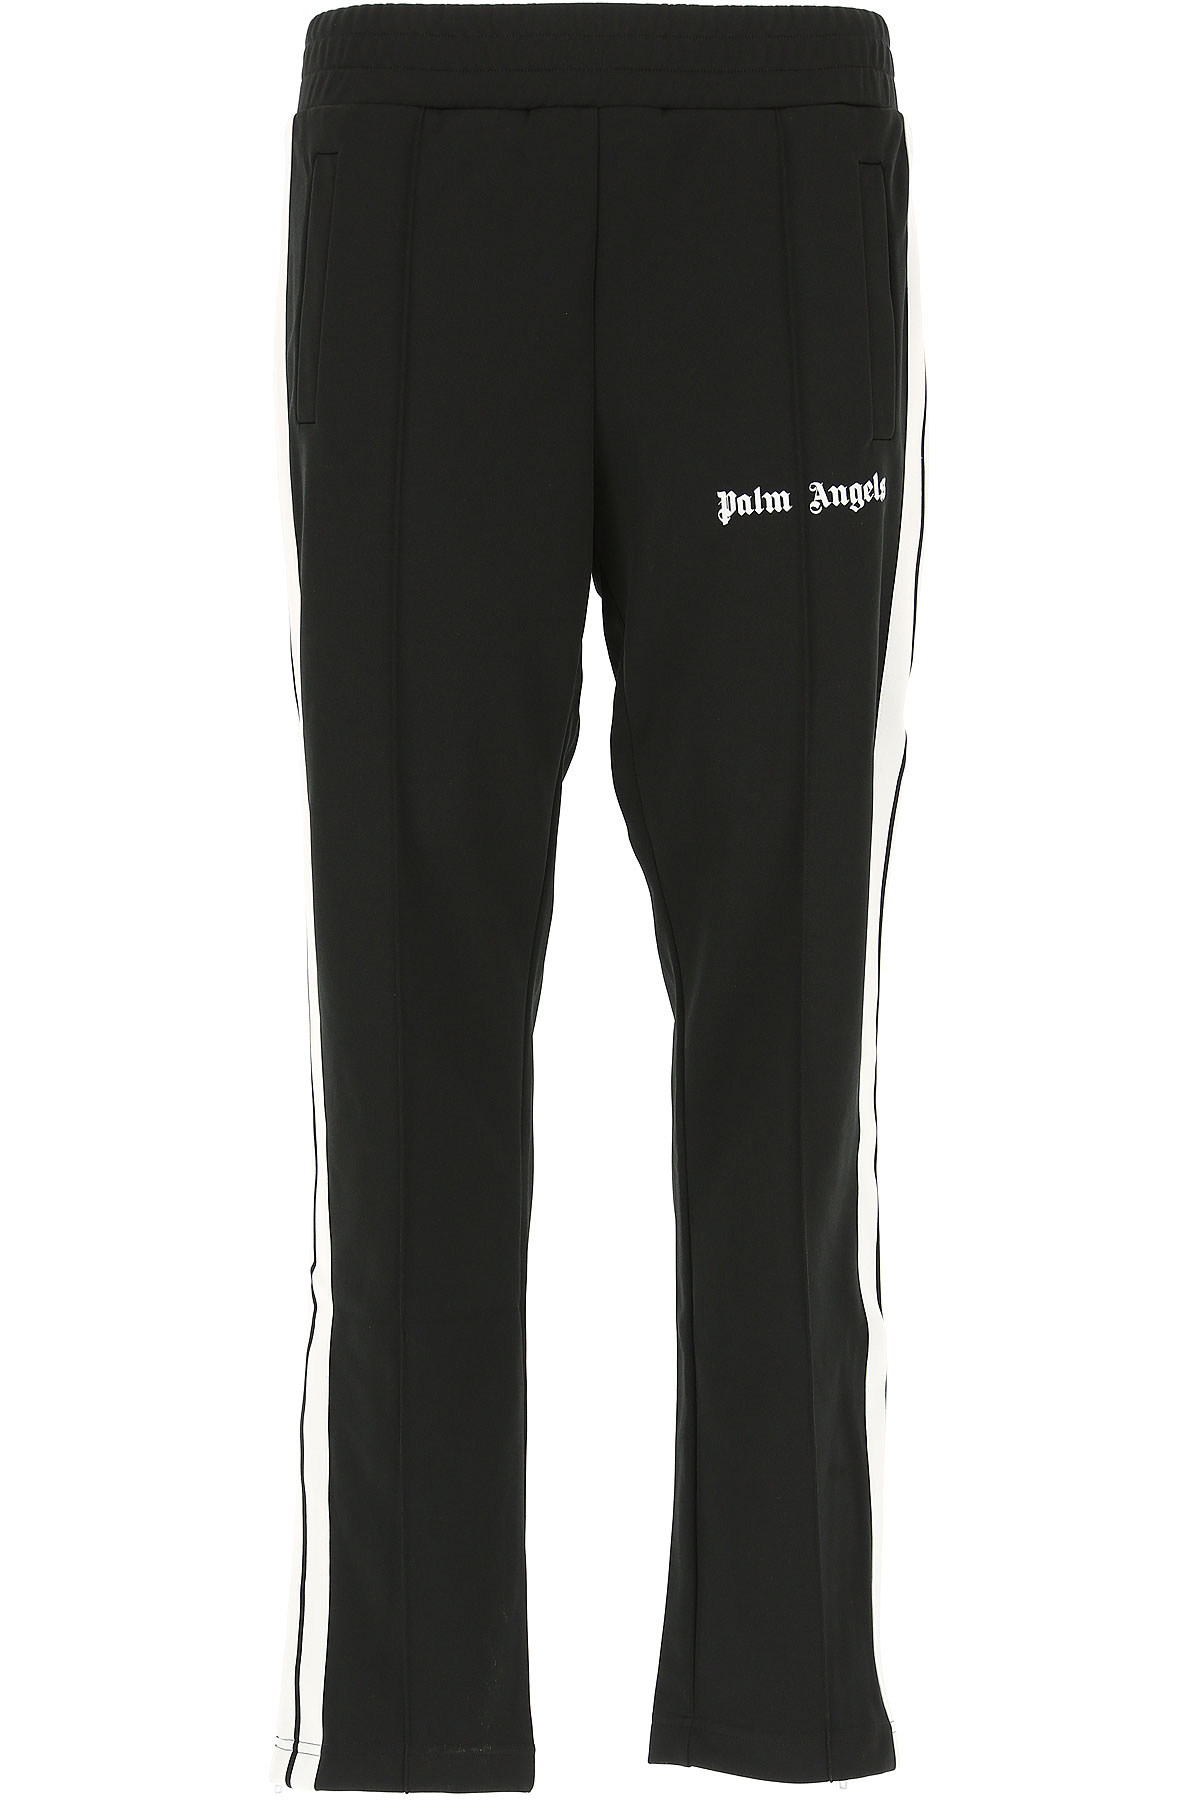 Image of Palm Angels Mens Clothing, Black, polyestere, 2017, L XL